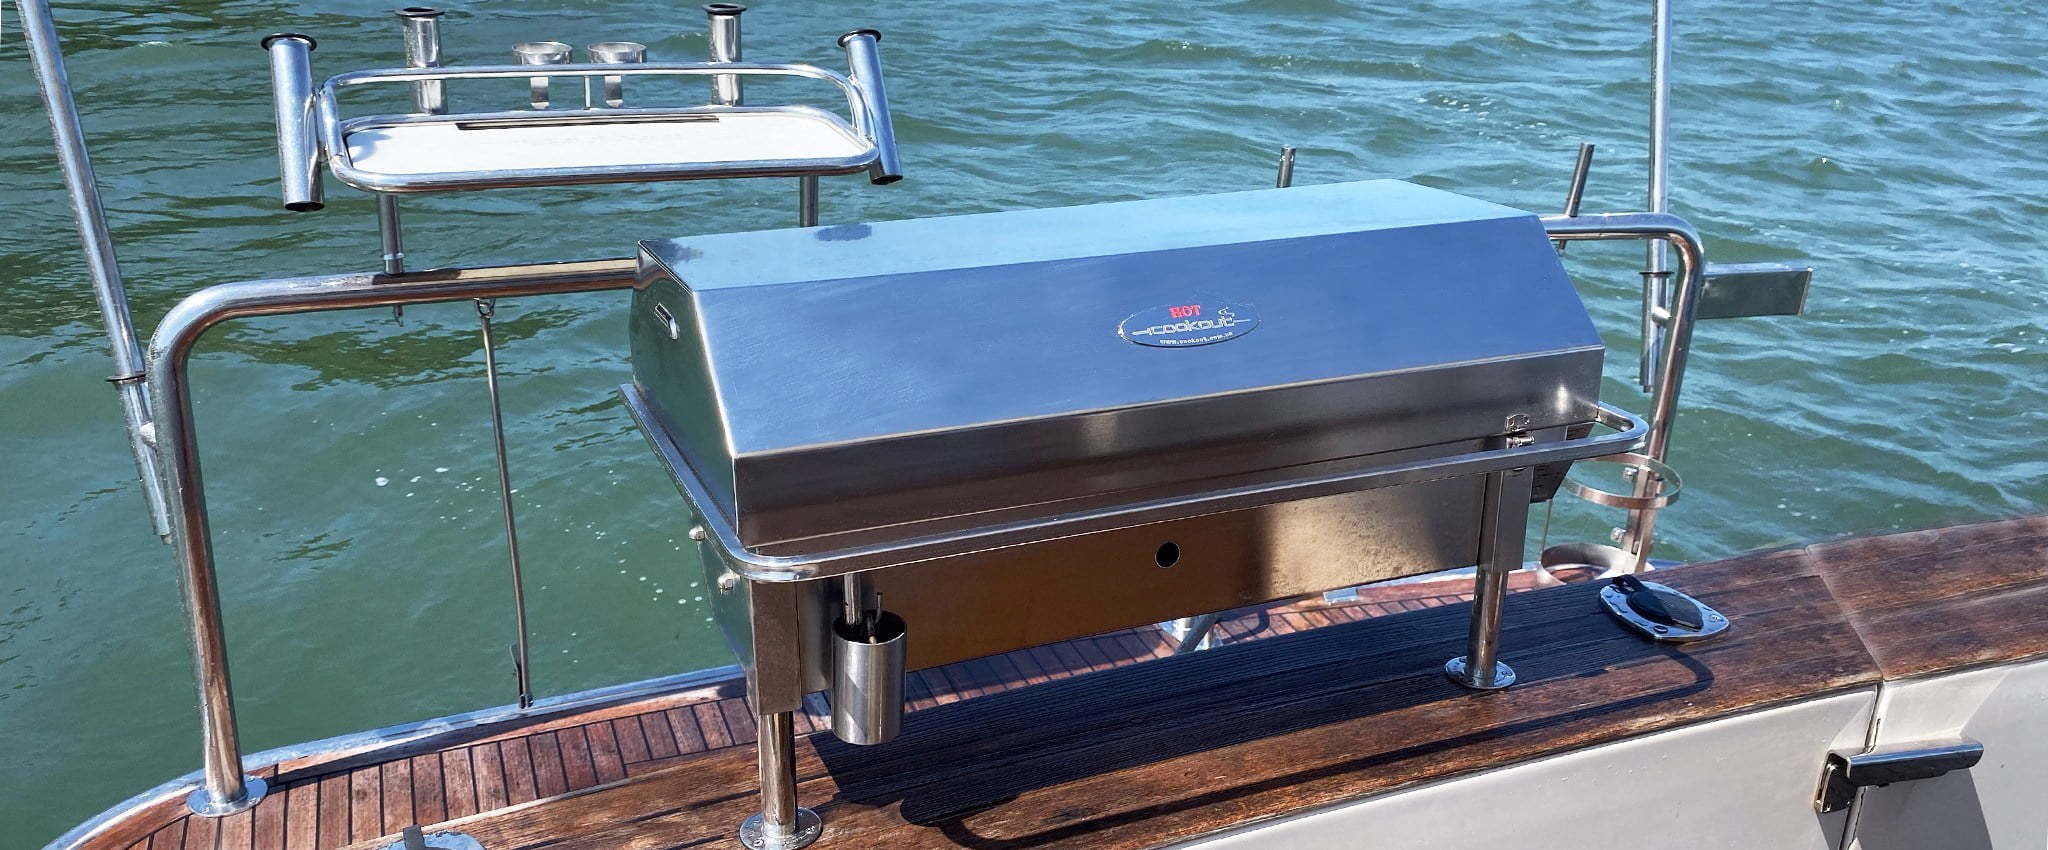 How To Clean A Boat Grill In Easy Way